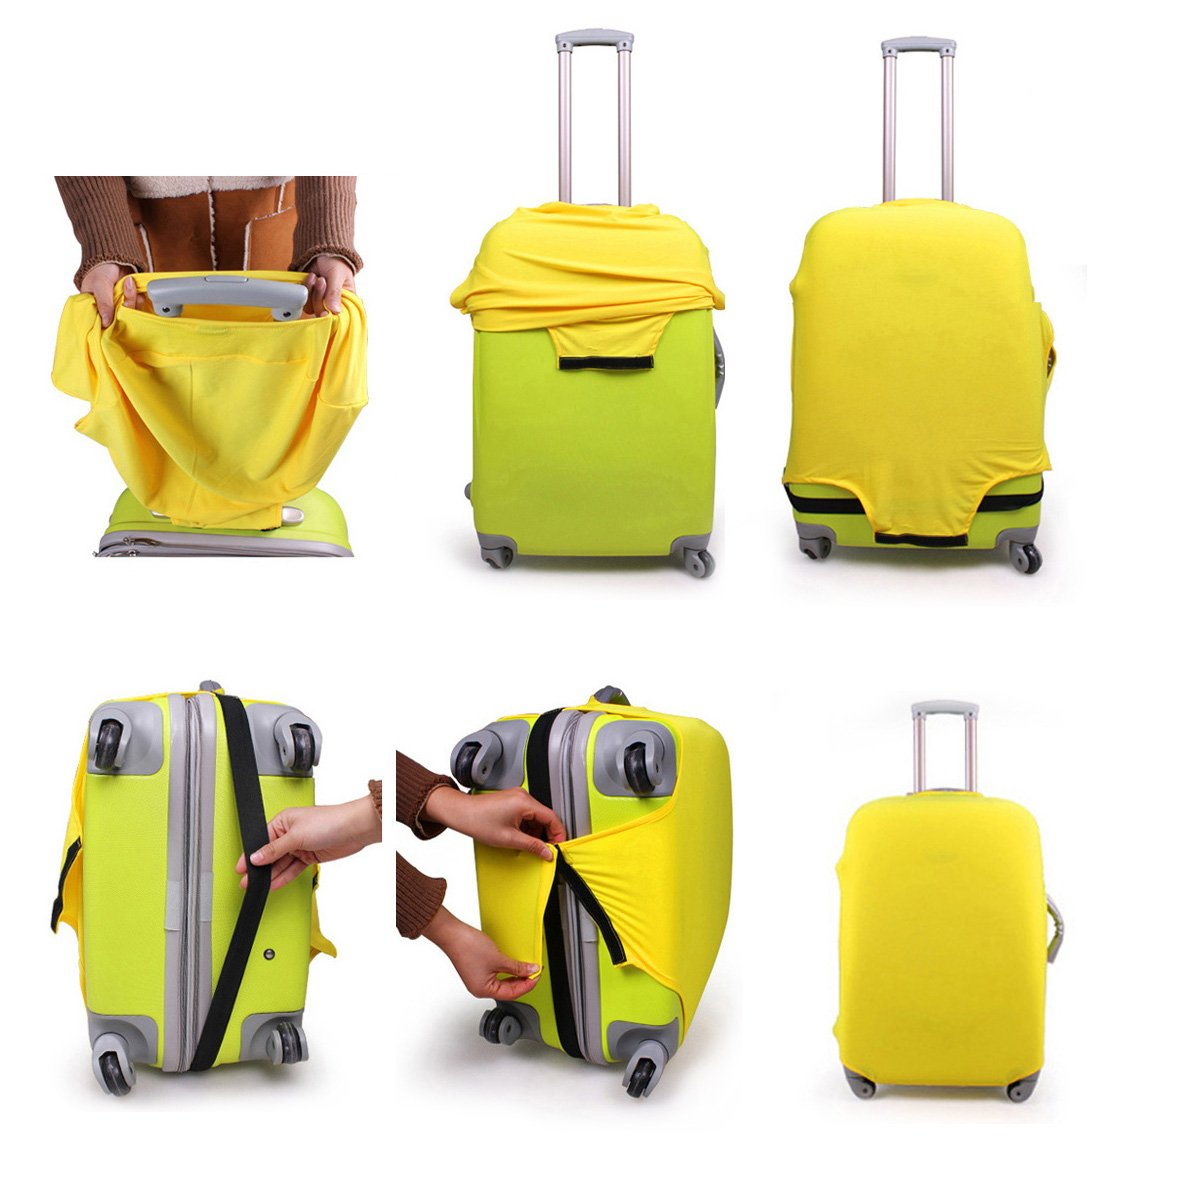 THEE Travel Luggage Elastic Cover Suitcase Washable Anti-Scratch Stretchy Protector SJJJBW1060pu-l